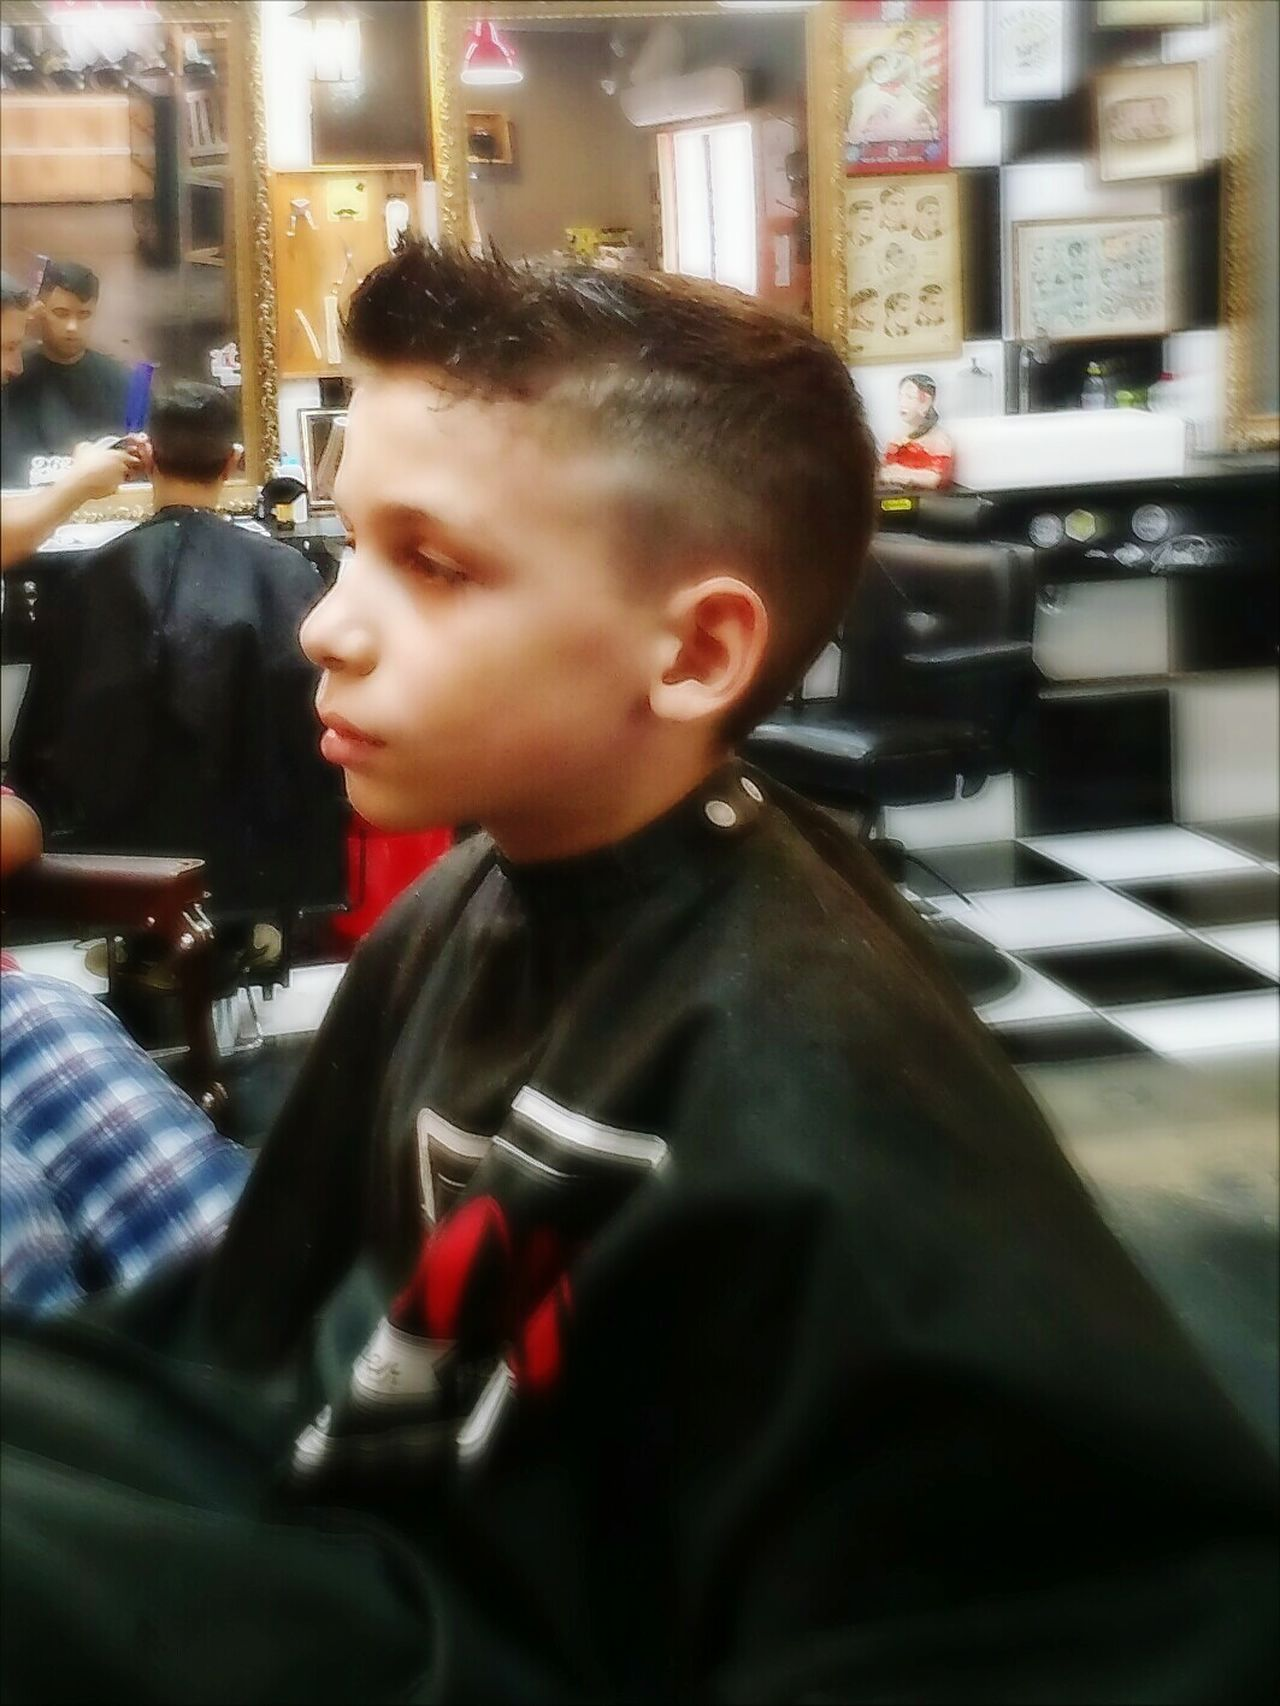 Child Boys One Boy Only Childhood City Close-up People One Person Sitting Haircut Hair Style Males  Barbershop Indoors